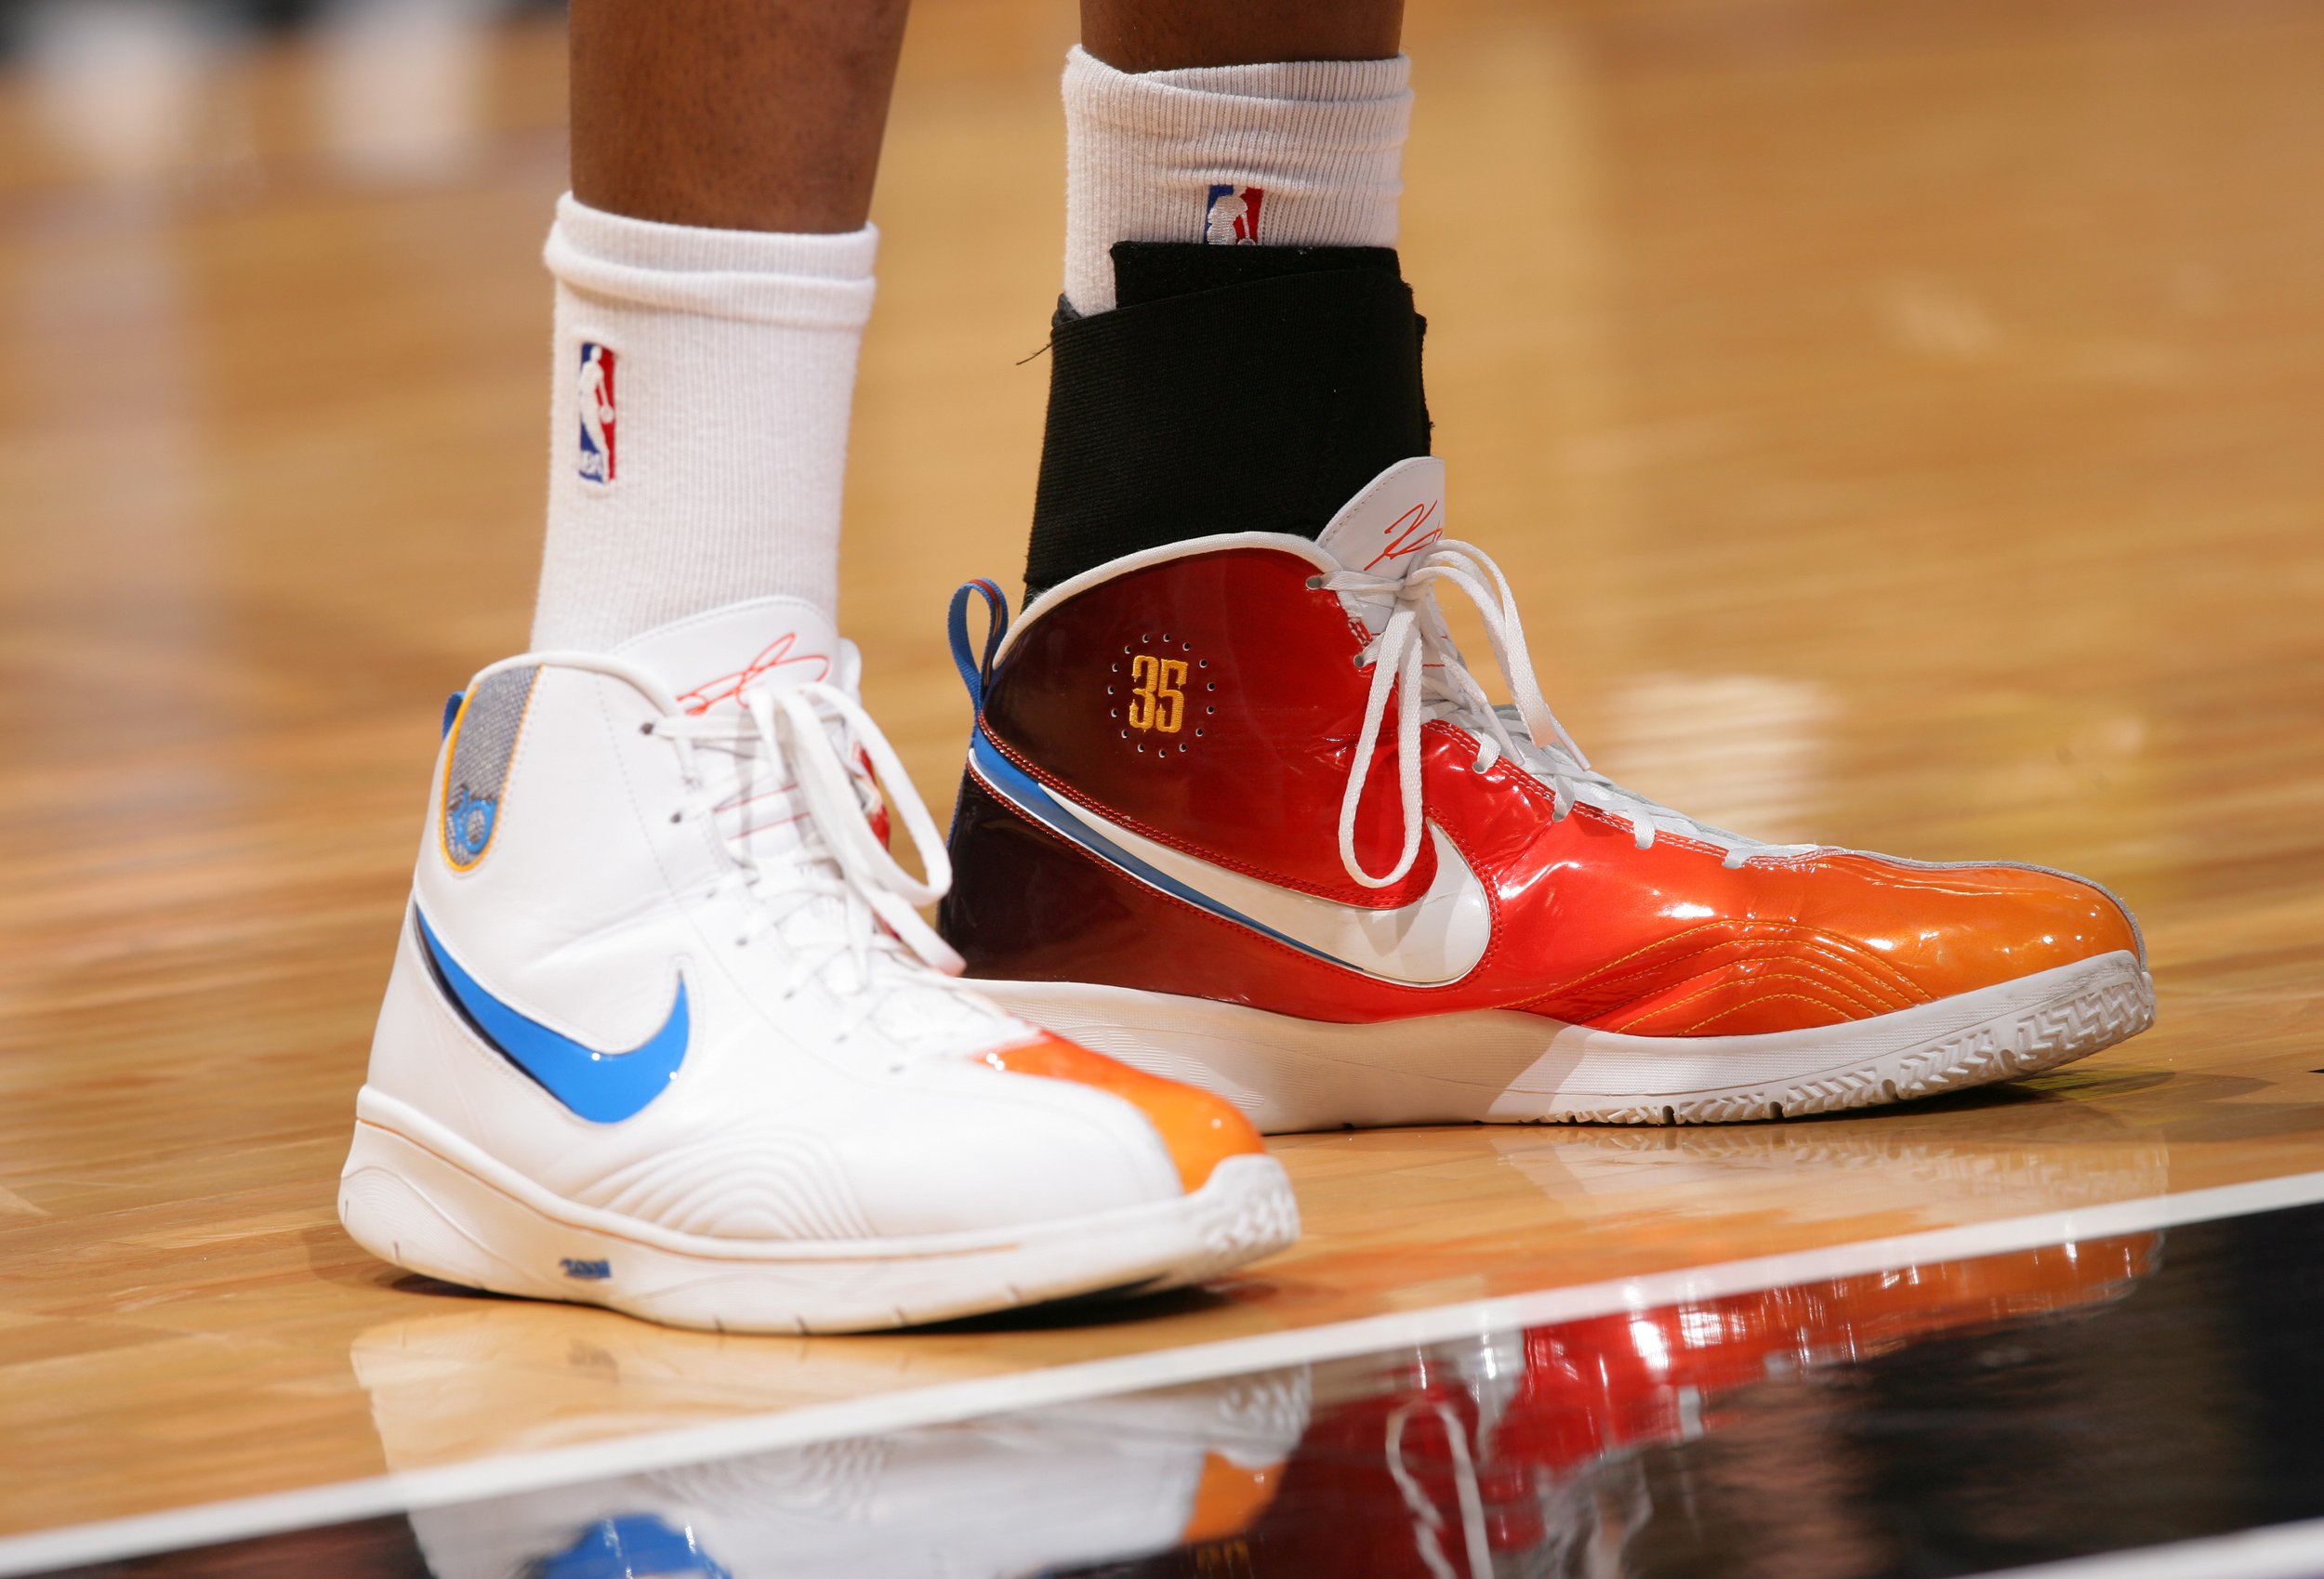 new product c446e e5481 Kevin Durant of the Oklahoma City Thunder wears some flashy shoes while  taking on the Sacramento Kings on Feb. 1, 2009, at ARCO Arena in  Sacramento, ...